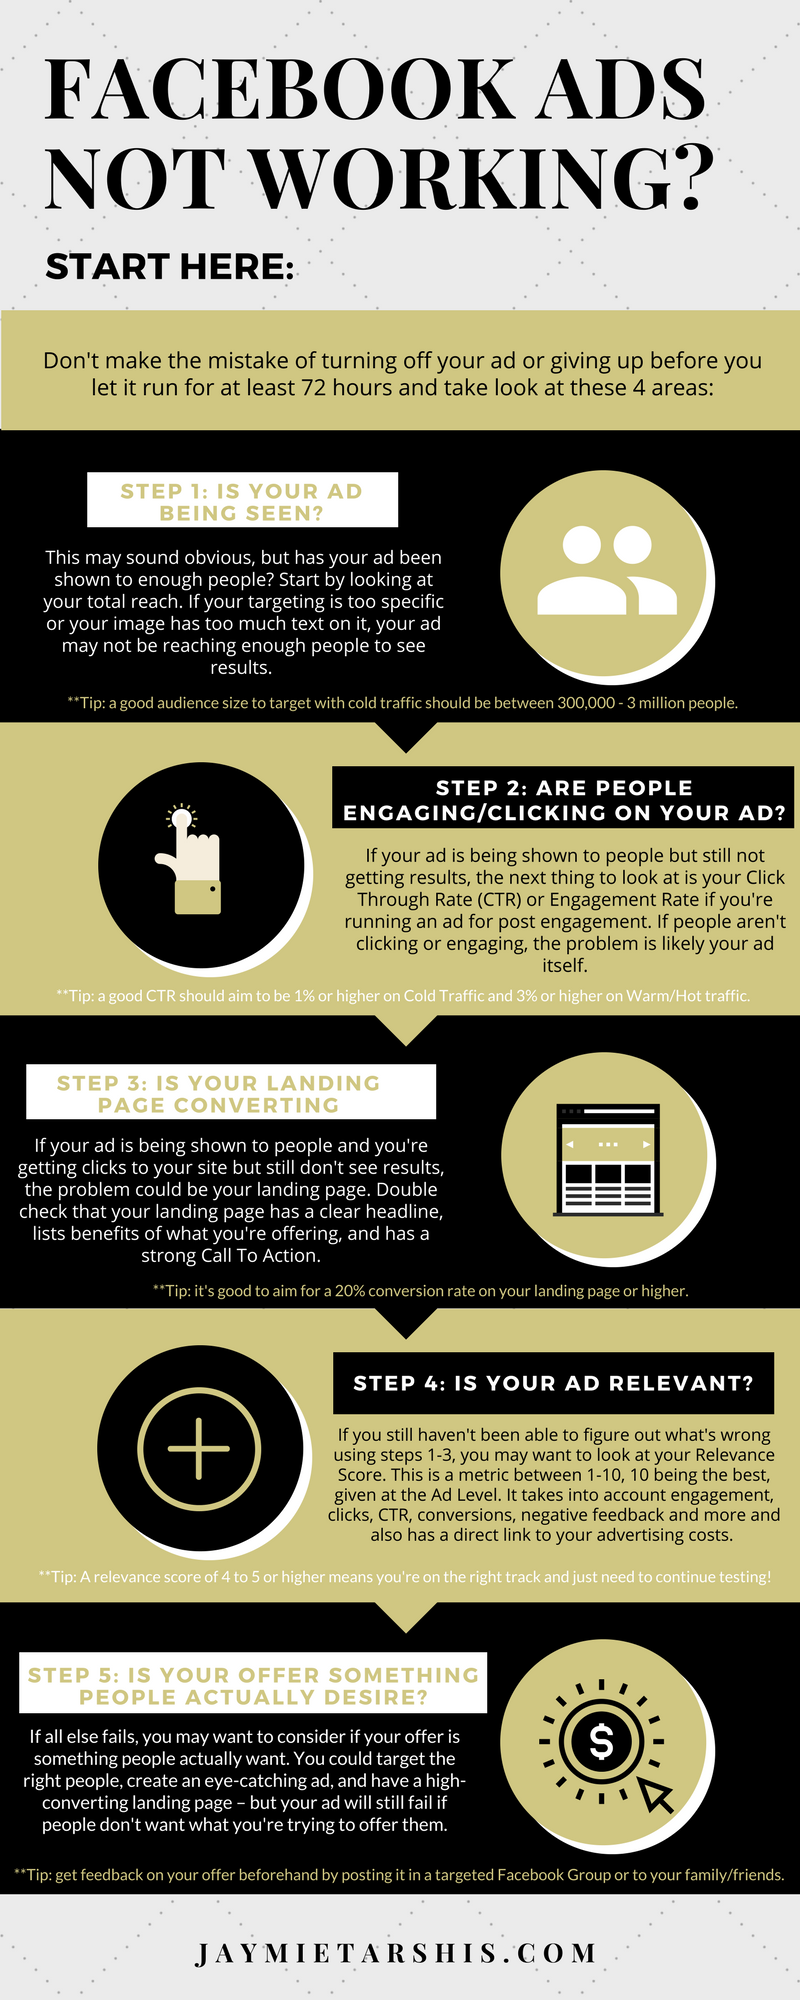 Facebook ads not working- Start here Infographic (2).png